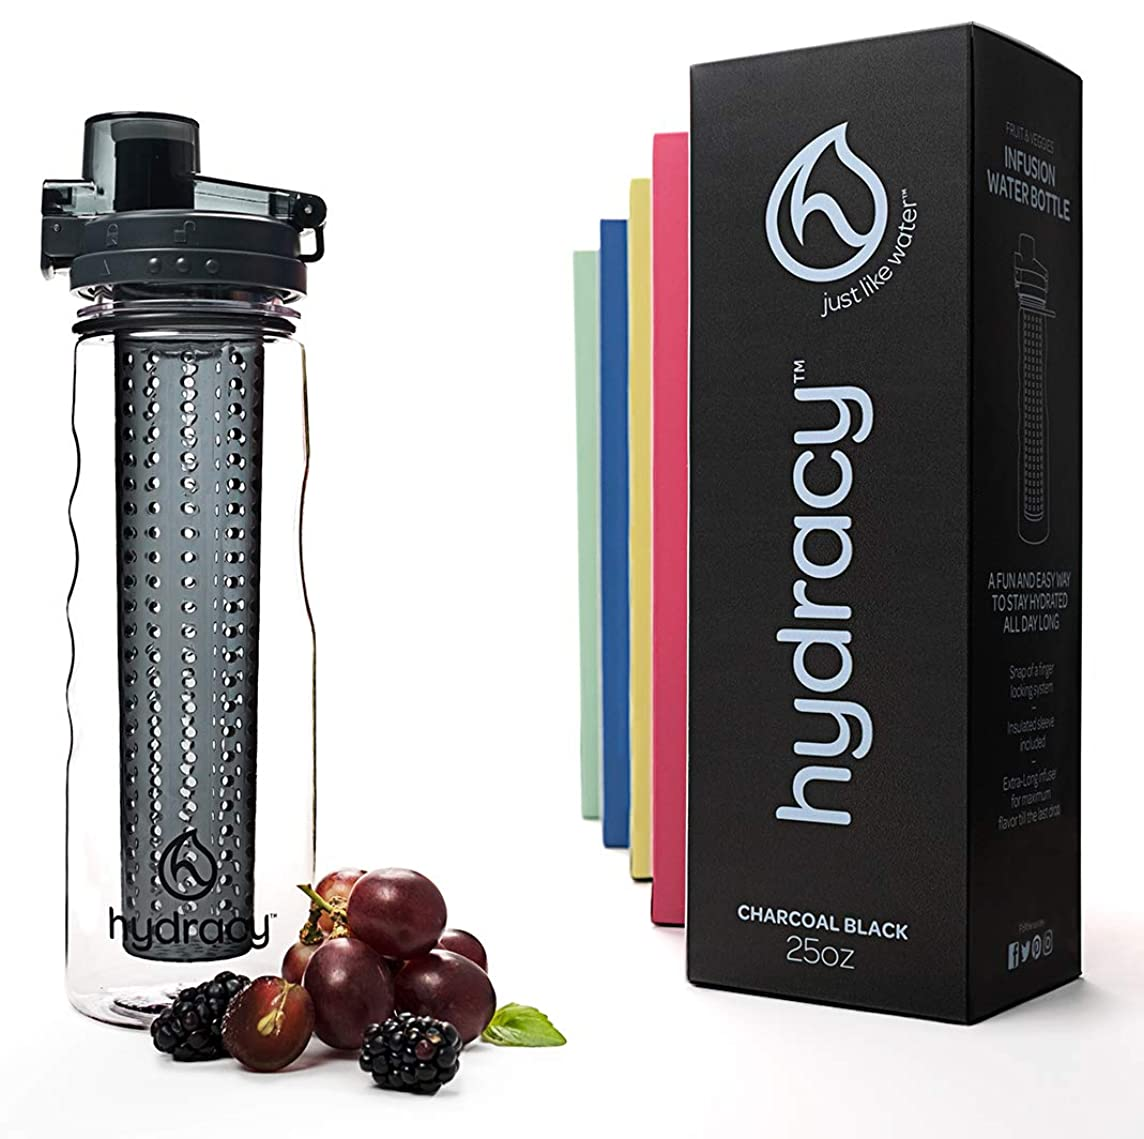 Hydracy Fruit Infuser Water Bottle - 25 Oz Sports Bottle with Full Length Infusion Rod and Insulating Sleeve Combo Set + 27 Fruit Infused Water Recipes eBook Gift - Your Healthy Hydration Made Easy